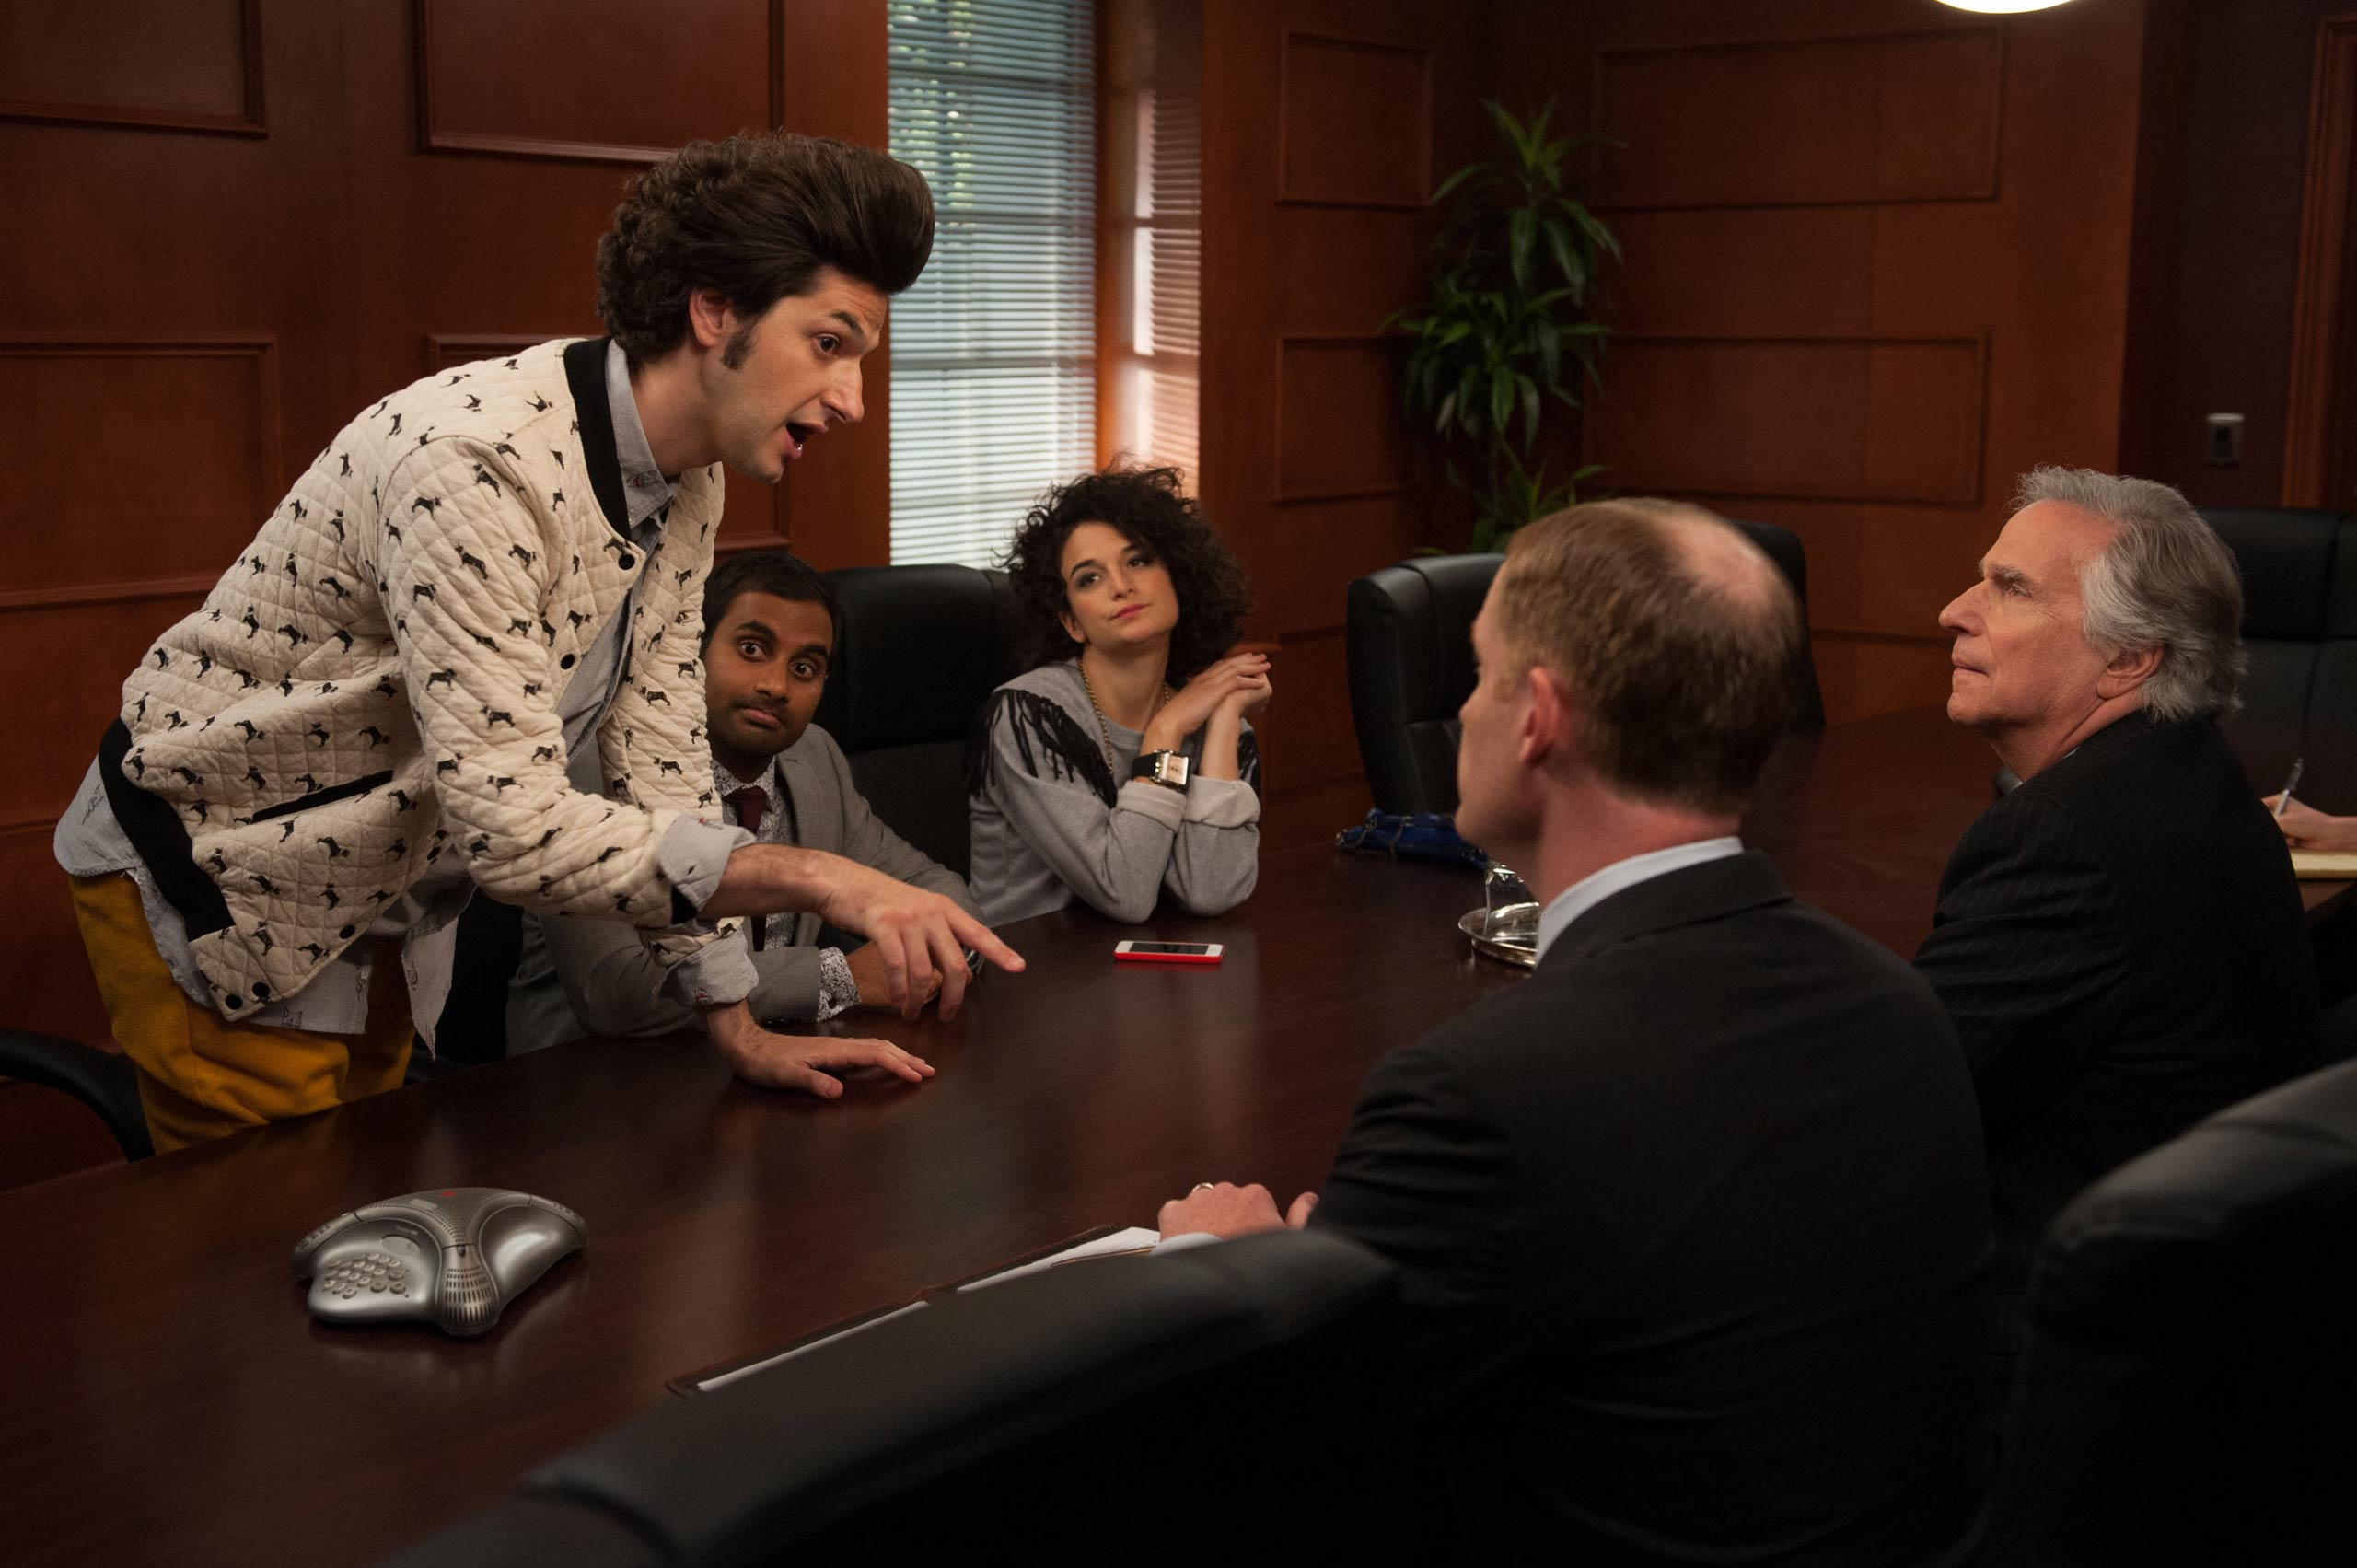 <strong>Ben Schwartz, left, as Jean-Ralphio Saperstein</strong>